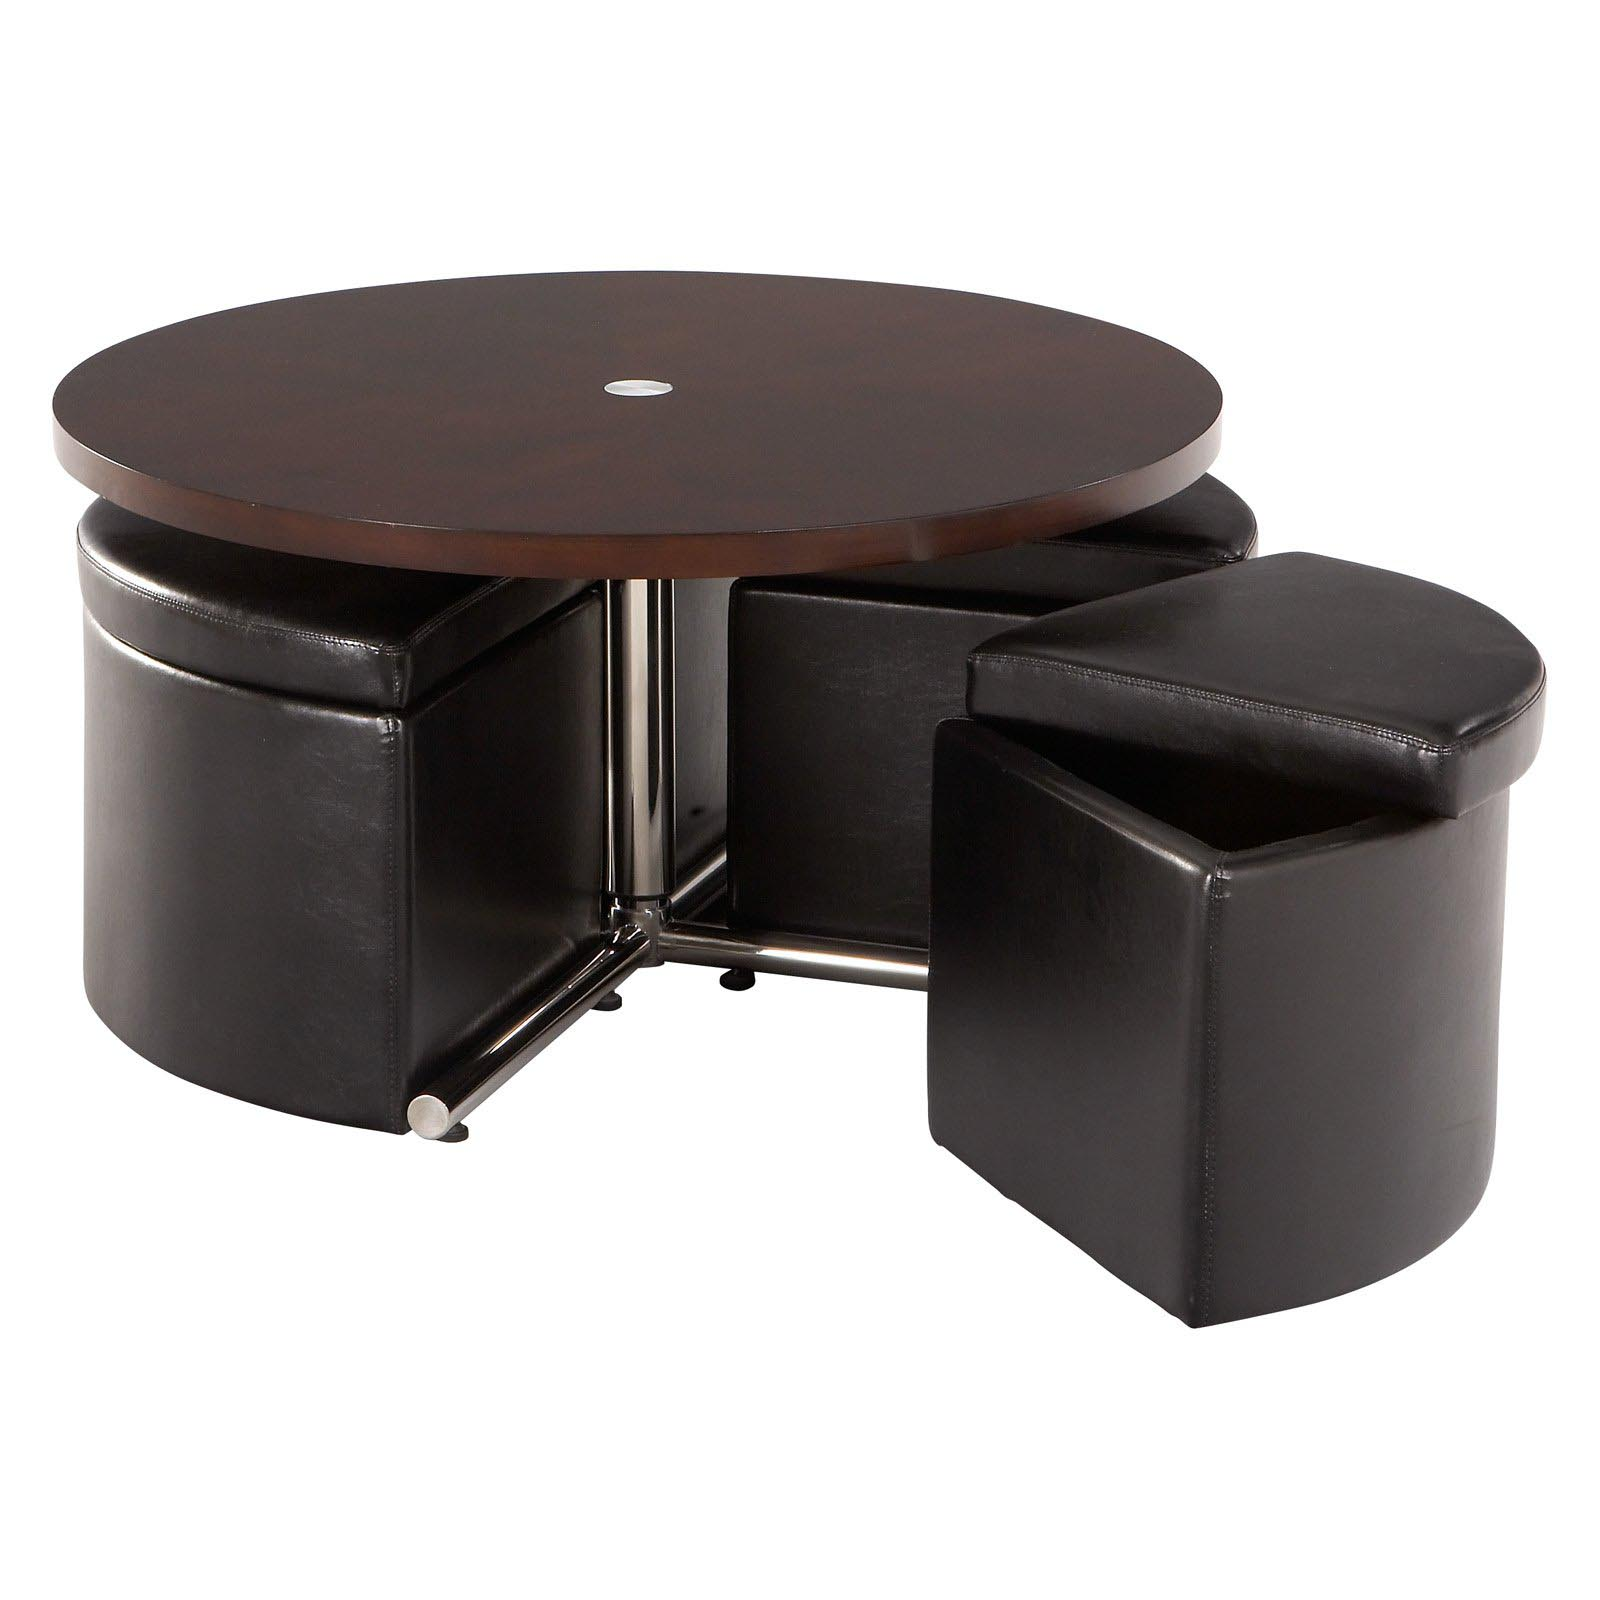 Round coffee table with seating coffee table design ideas Round coffee tables